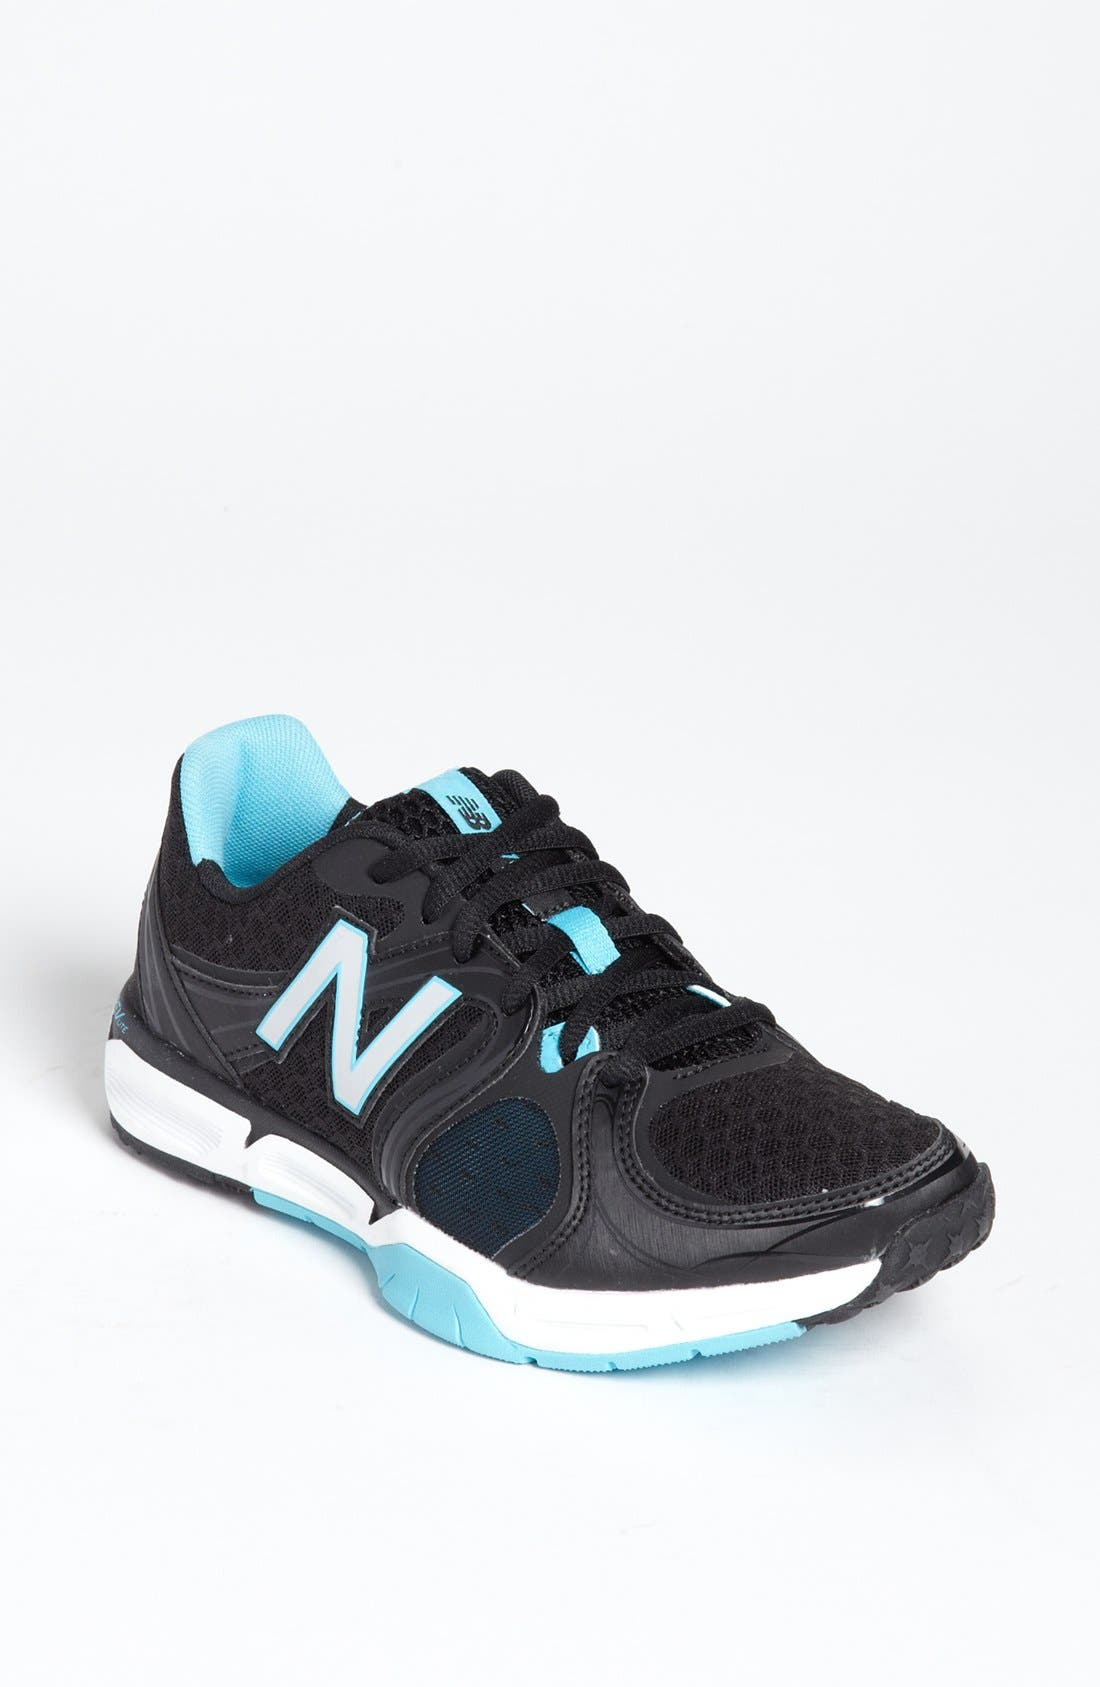 Alternate Image 1 Selected - New Balance '797' Training Shoe (Women) (Online Only)